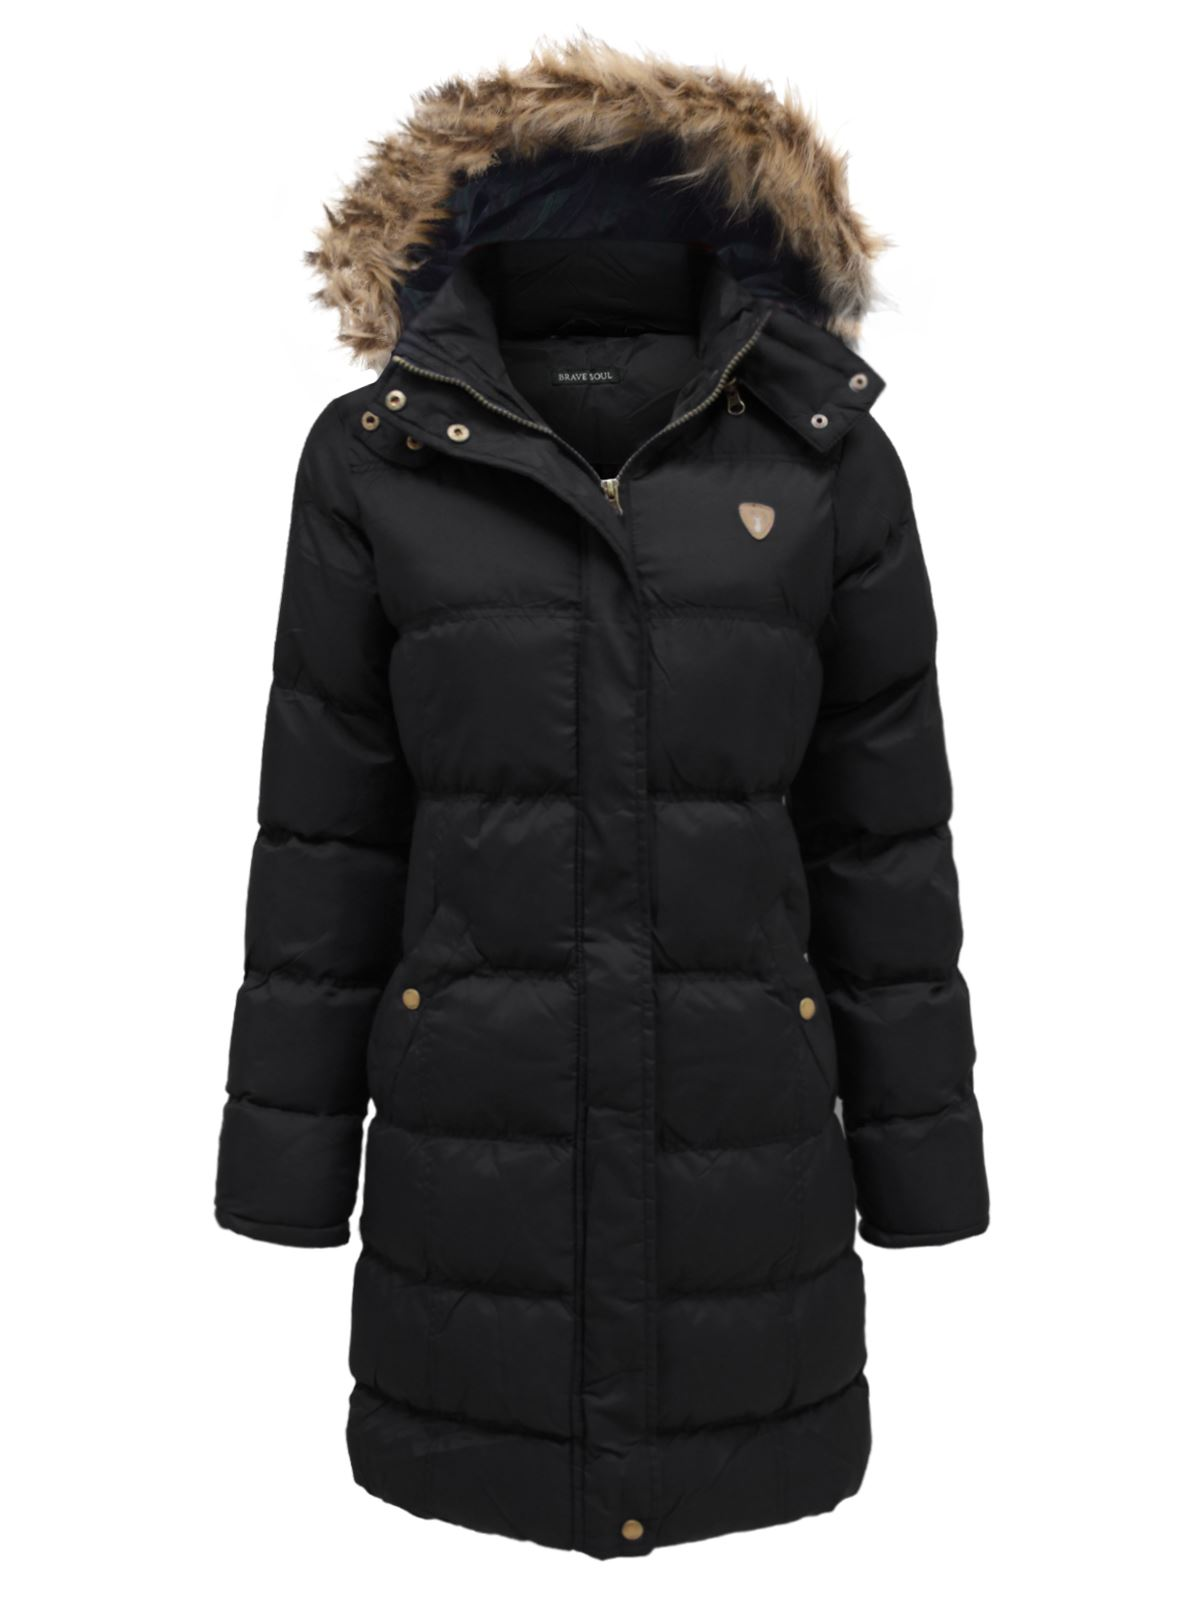 Collection Black Puffer Jacket Women S Pictures - Reikian